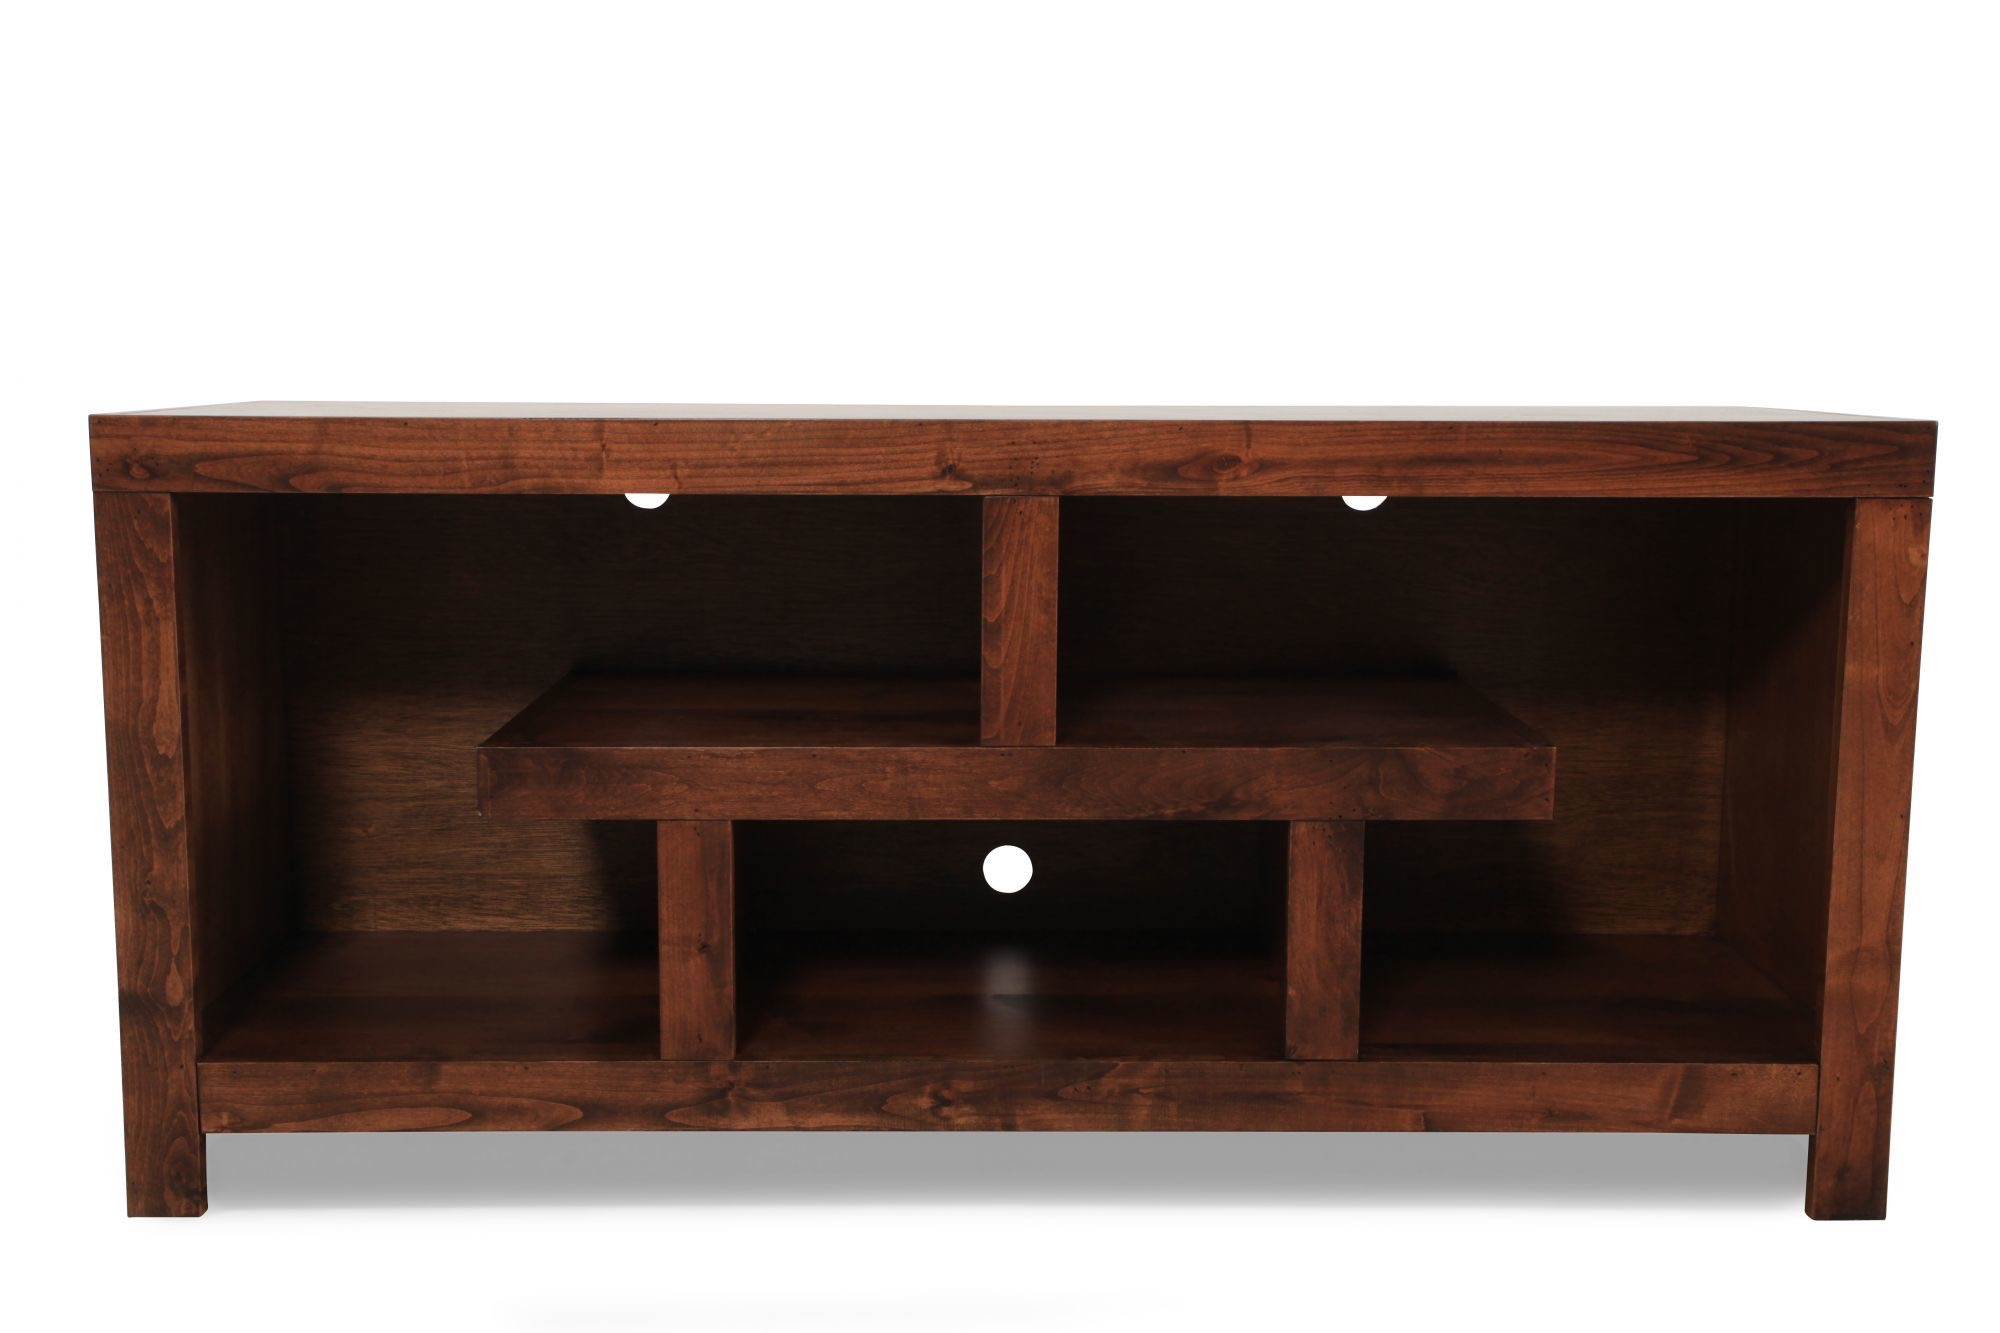 Target Flat Screen Tv Stands | Sauder Media Cabinet | Sauder Tv Stands